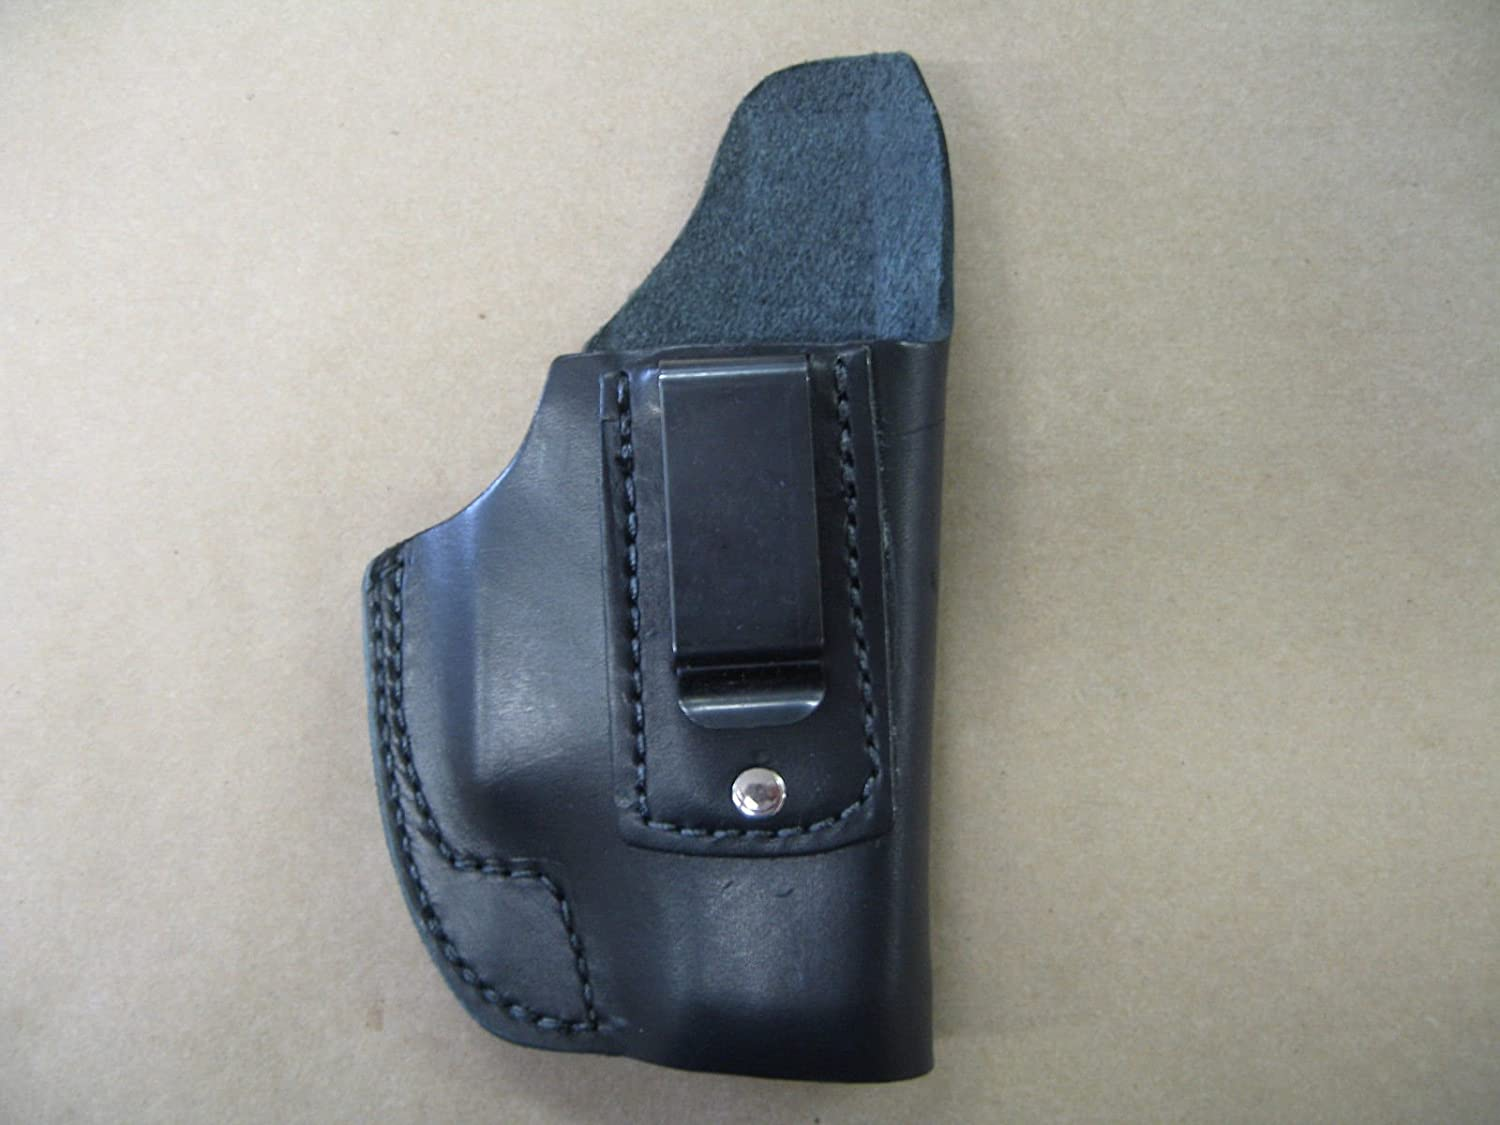 Taurus Millennium G2 9mm 40 Iwb Leather In The Schematics Waistband Concealed Carry Holster Black Sports Outdoors